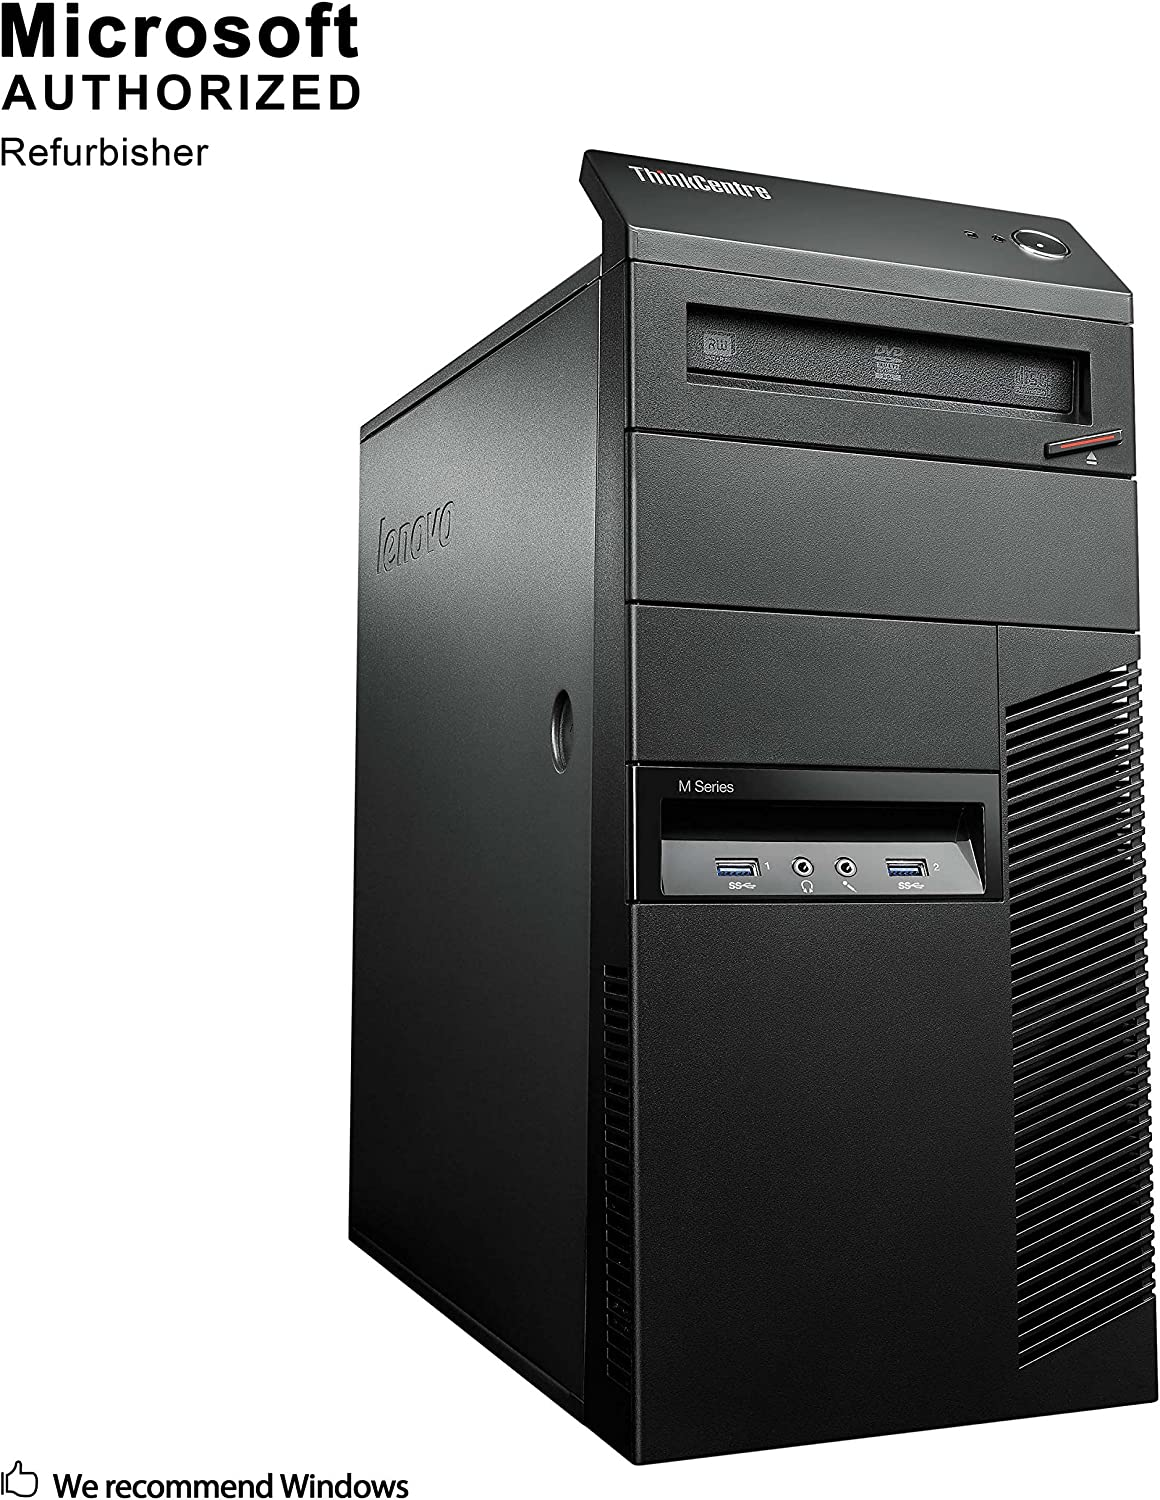 Lenovo ThinkCentre M93p Tower Desktop PC, Intel Core i5 4590 up to 3.7GHz, 8G DDR3, 120G SSD + 500G, WiFi, Bluetooth 4.0, DVD, Windows 10 64 Bit-Multi-Language Supports English/Spanish/French(Renewed)